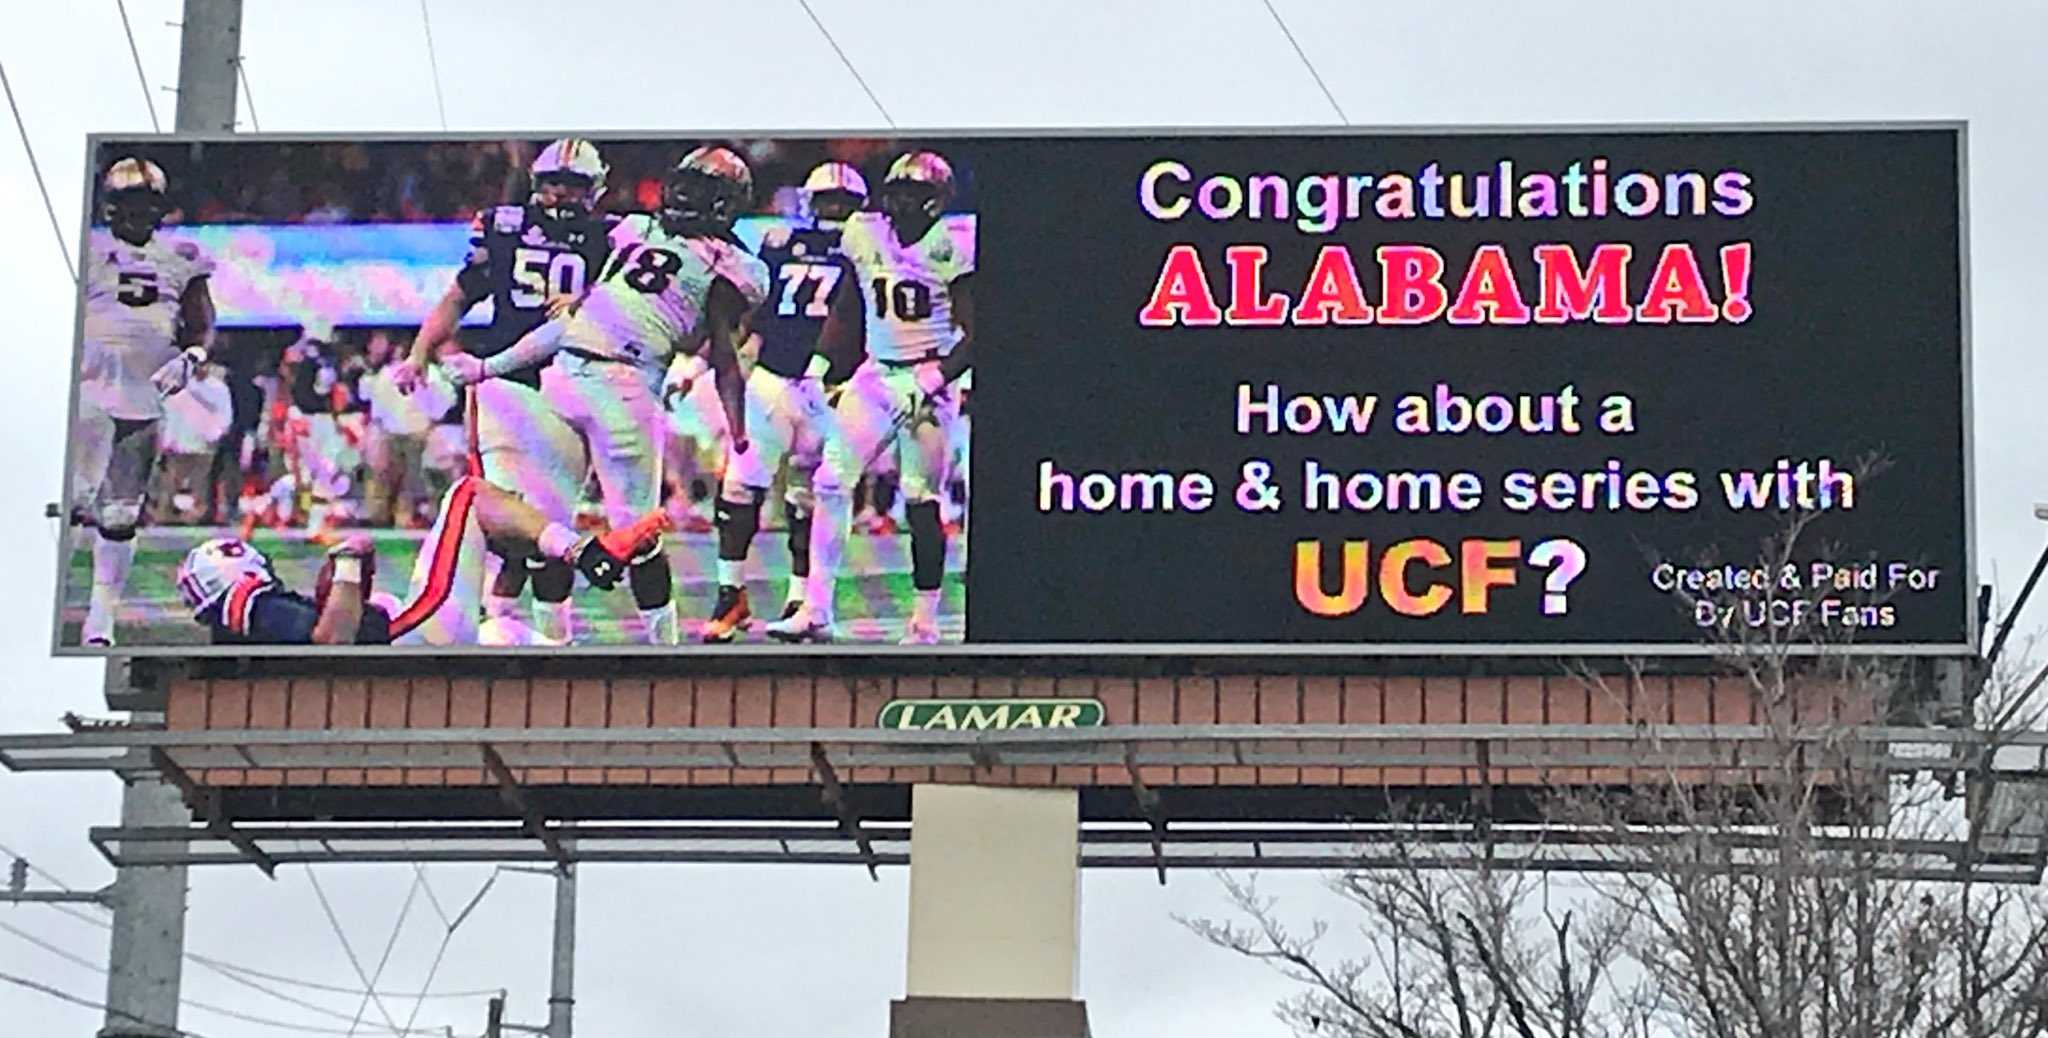 UCF challenges Alabama to game with Tuscaloosa billboard